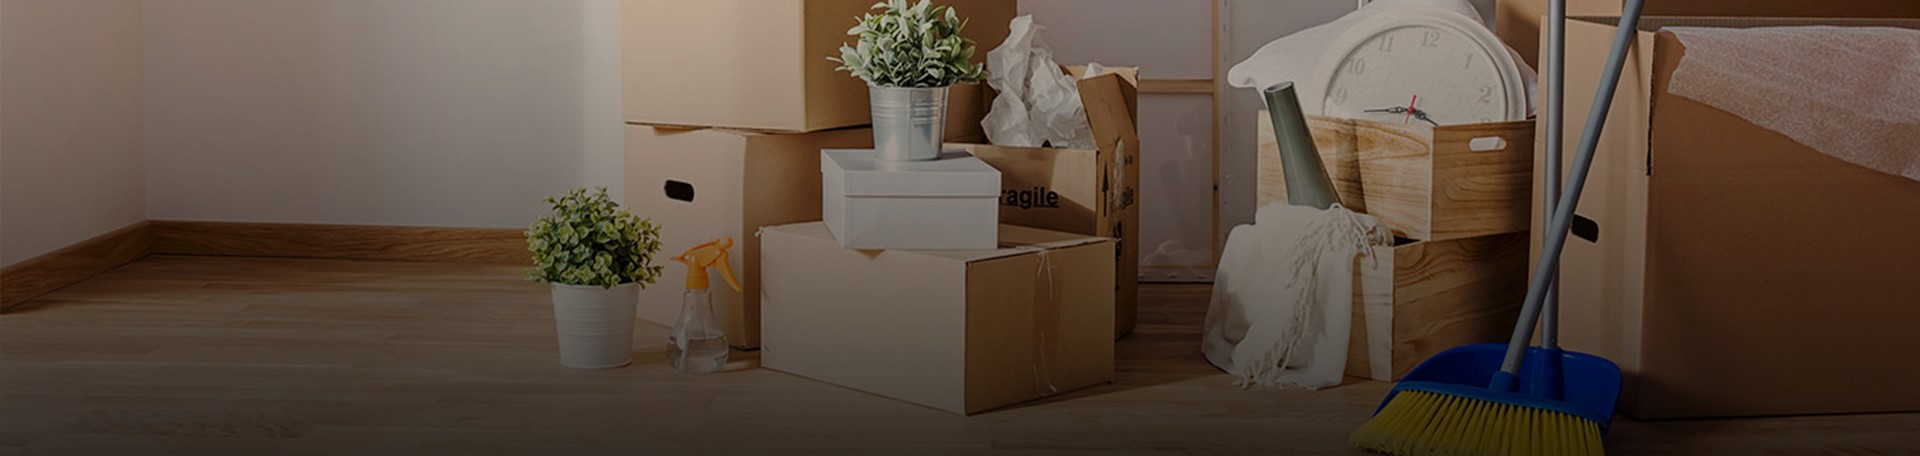 End of Lease Cleaning Melbourne   Vacate and Move Out Clean   Bond Back Guarantee